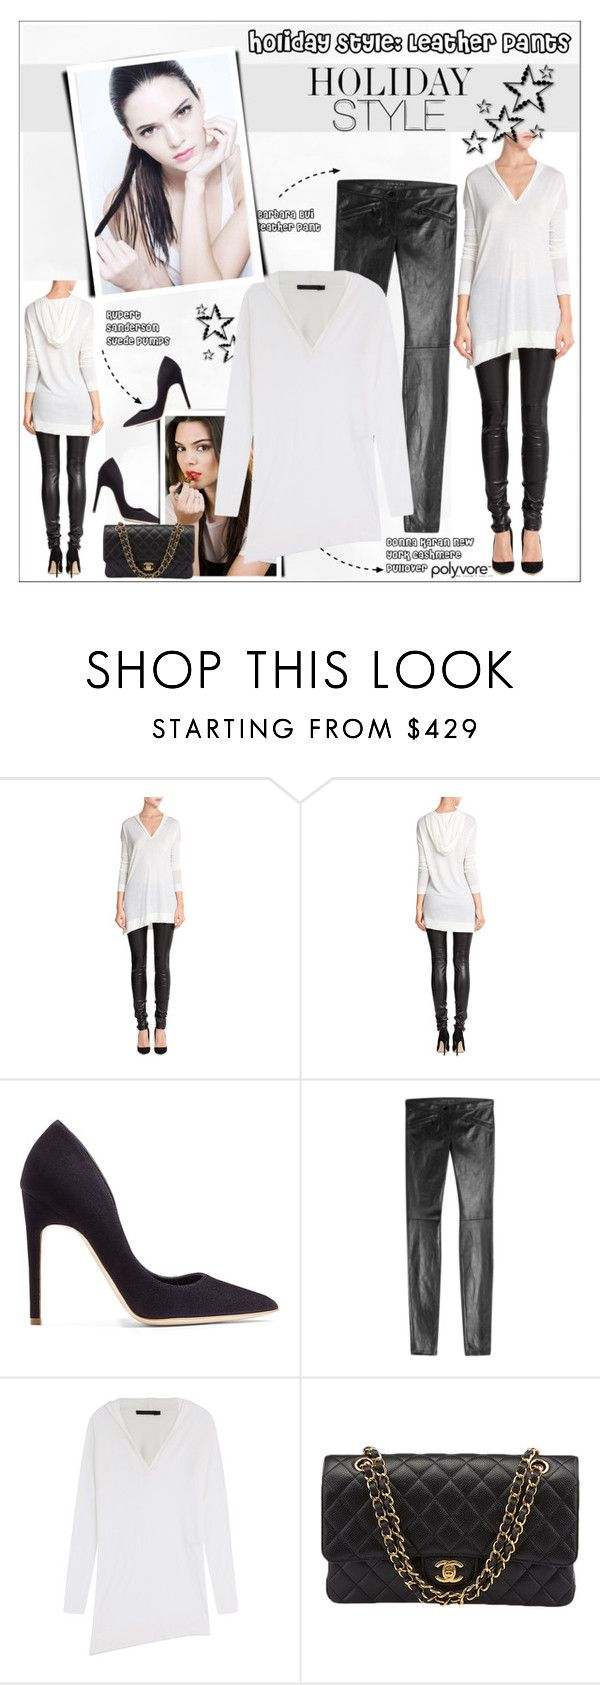 """""""Holiday Style: Leather Pants"""" by alves-nogueira ❤ liked on Polyvore featuring Donna Karan, Rupert Sanderson, Estée Lauder, Barbara Bui and Chanel"""